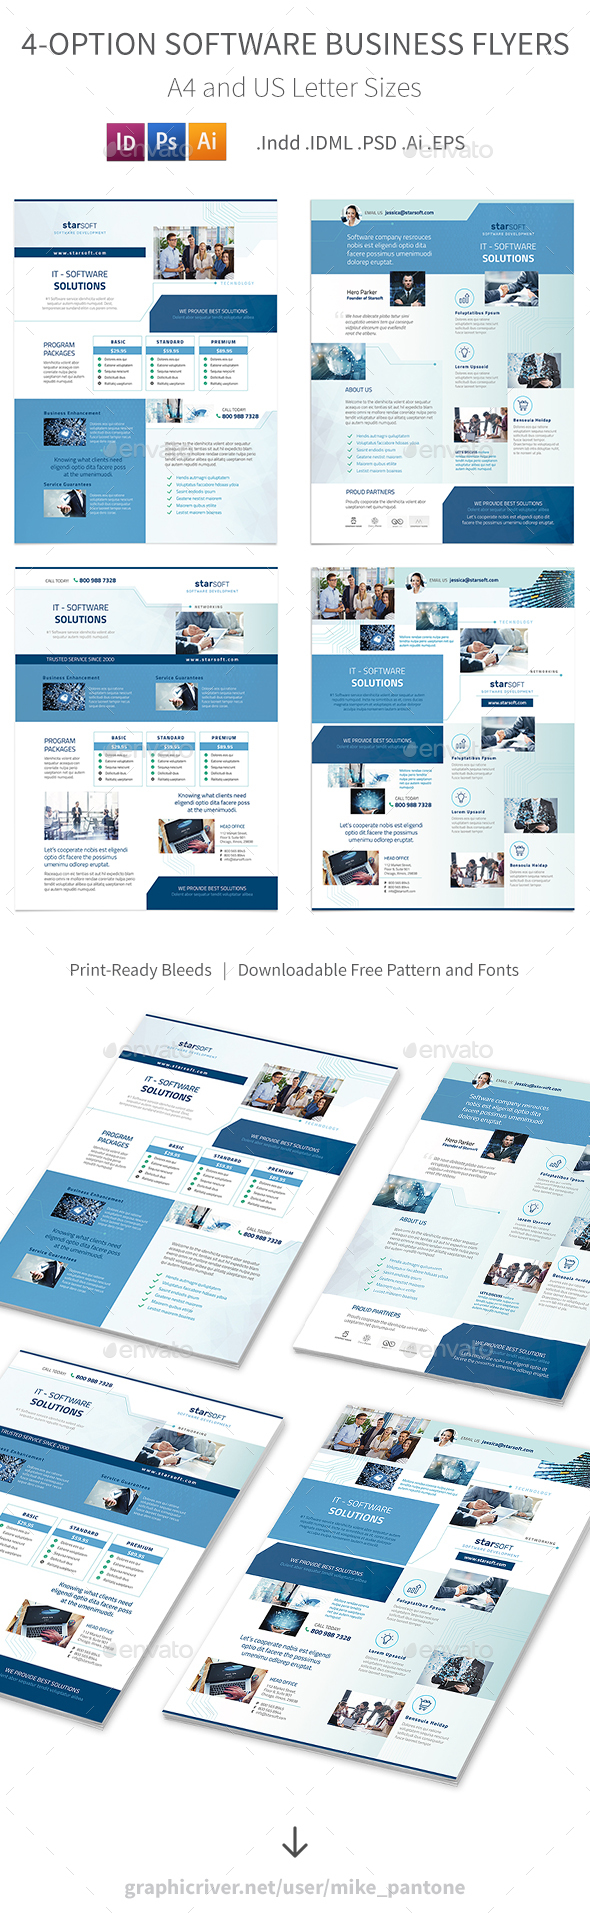 Software Business Flyers – 4 Options - Corporate Flyers